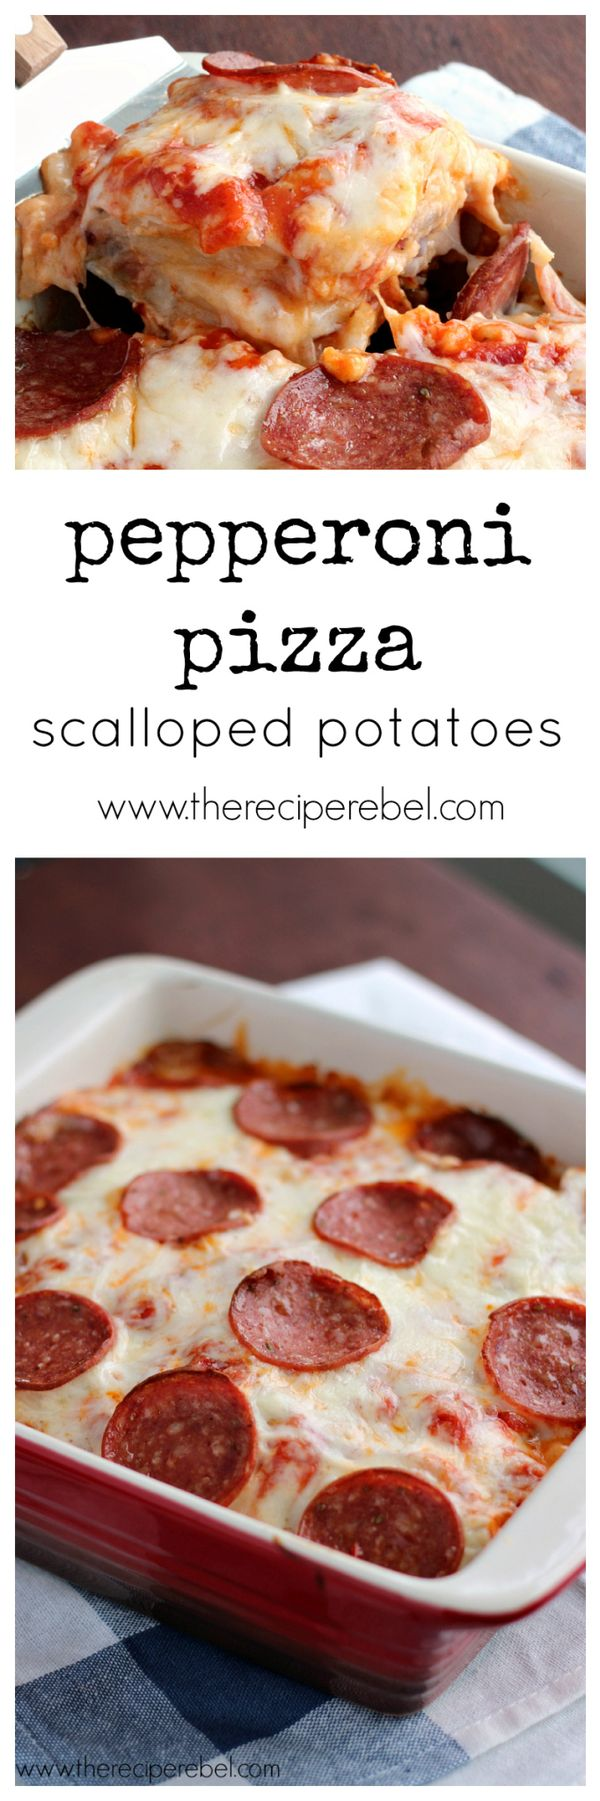 Pepperoni Pizza Scalloped Potatoes: layers of thinly sliced potatoes, bechamel sauce, pizza sauce, pepperoni and cheese. The ultimate comfort food! www.thereciperebel.com